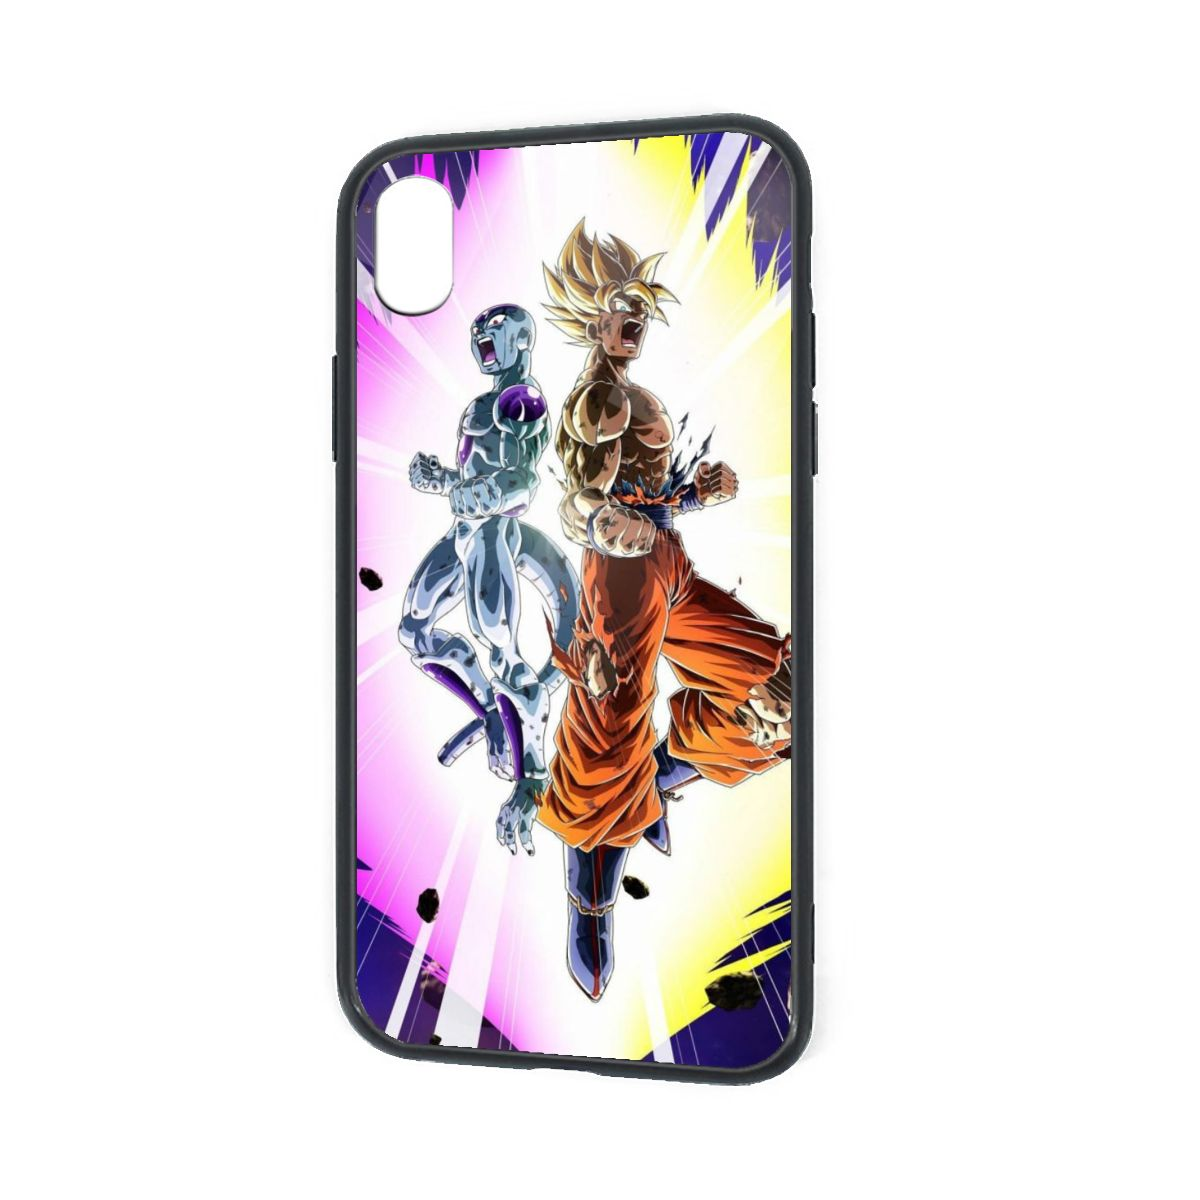 IPhone X XR XS 6 7 8 Plus Hybrid Soft Grip Clear Back Panel Ultra-Thin [Slim Fit] Cover Frieza and Goku